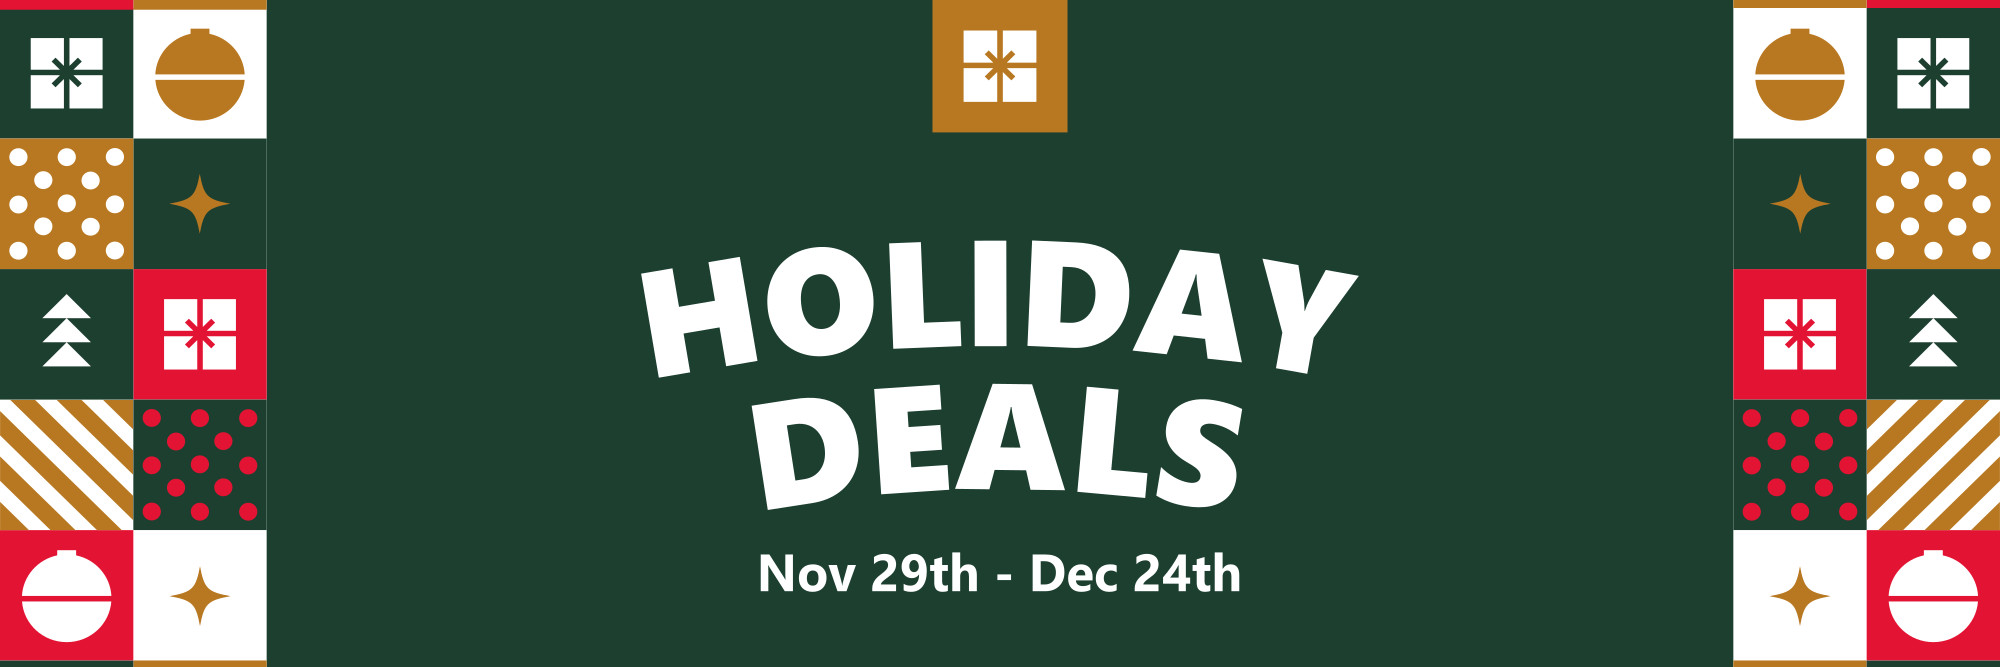 Holiday Deals at West Point Cycles Nov 29th - Dec 24th